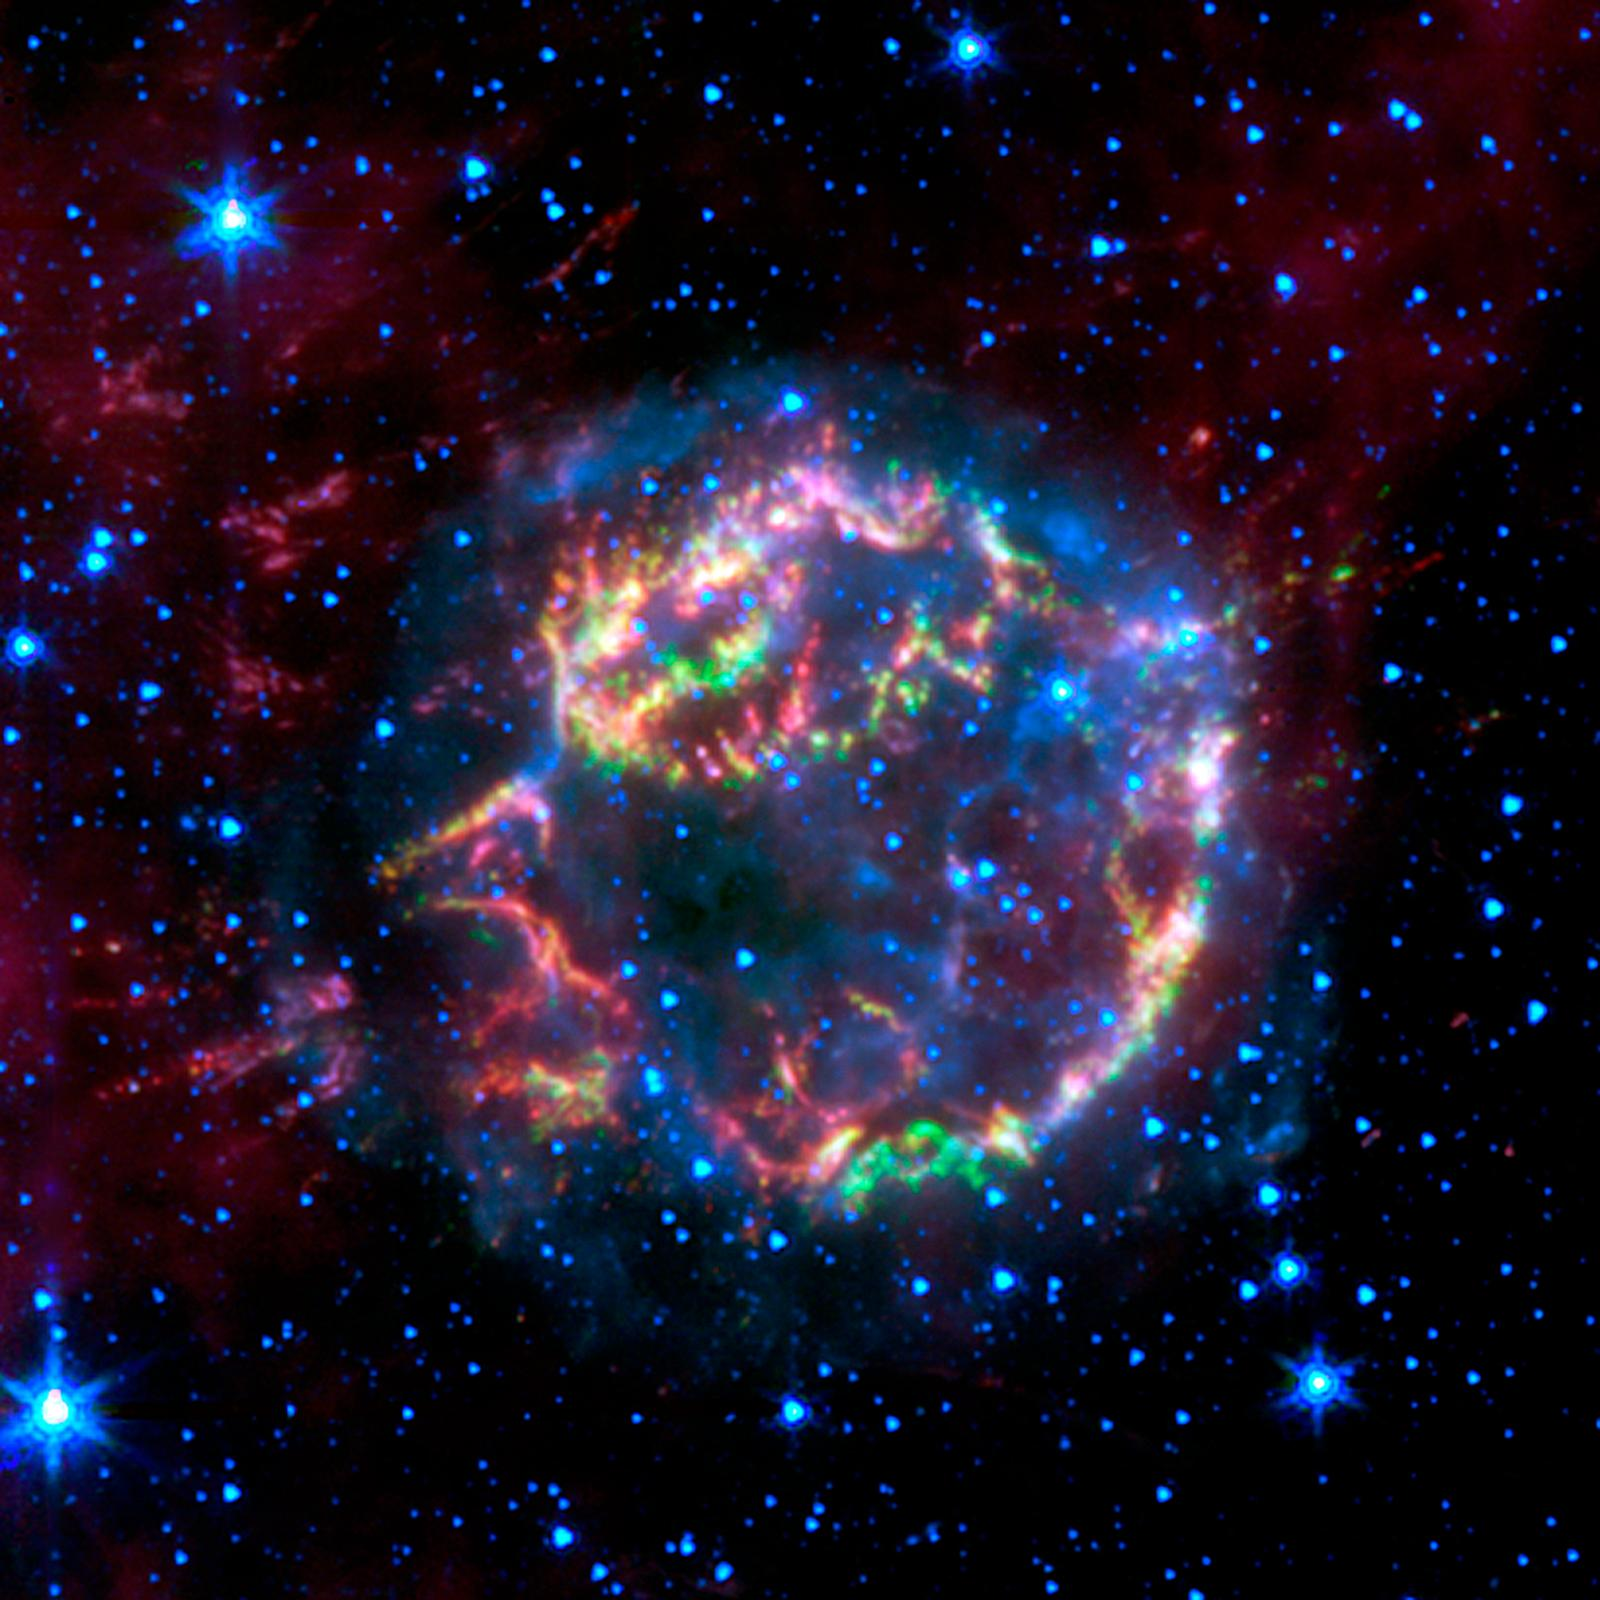 hd nasa star explosion - photo #38